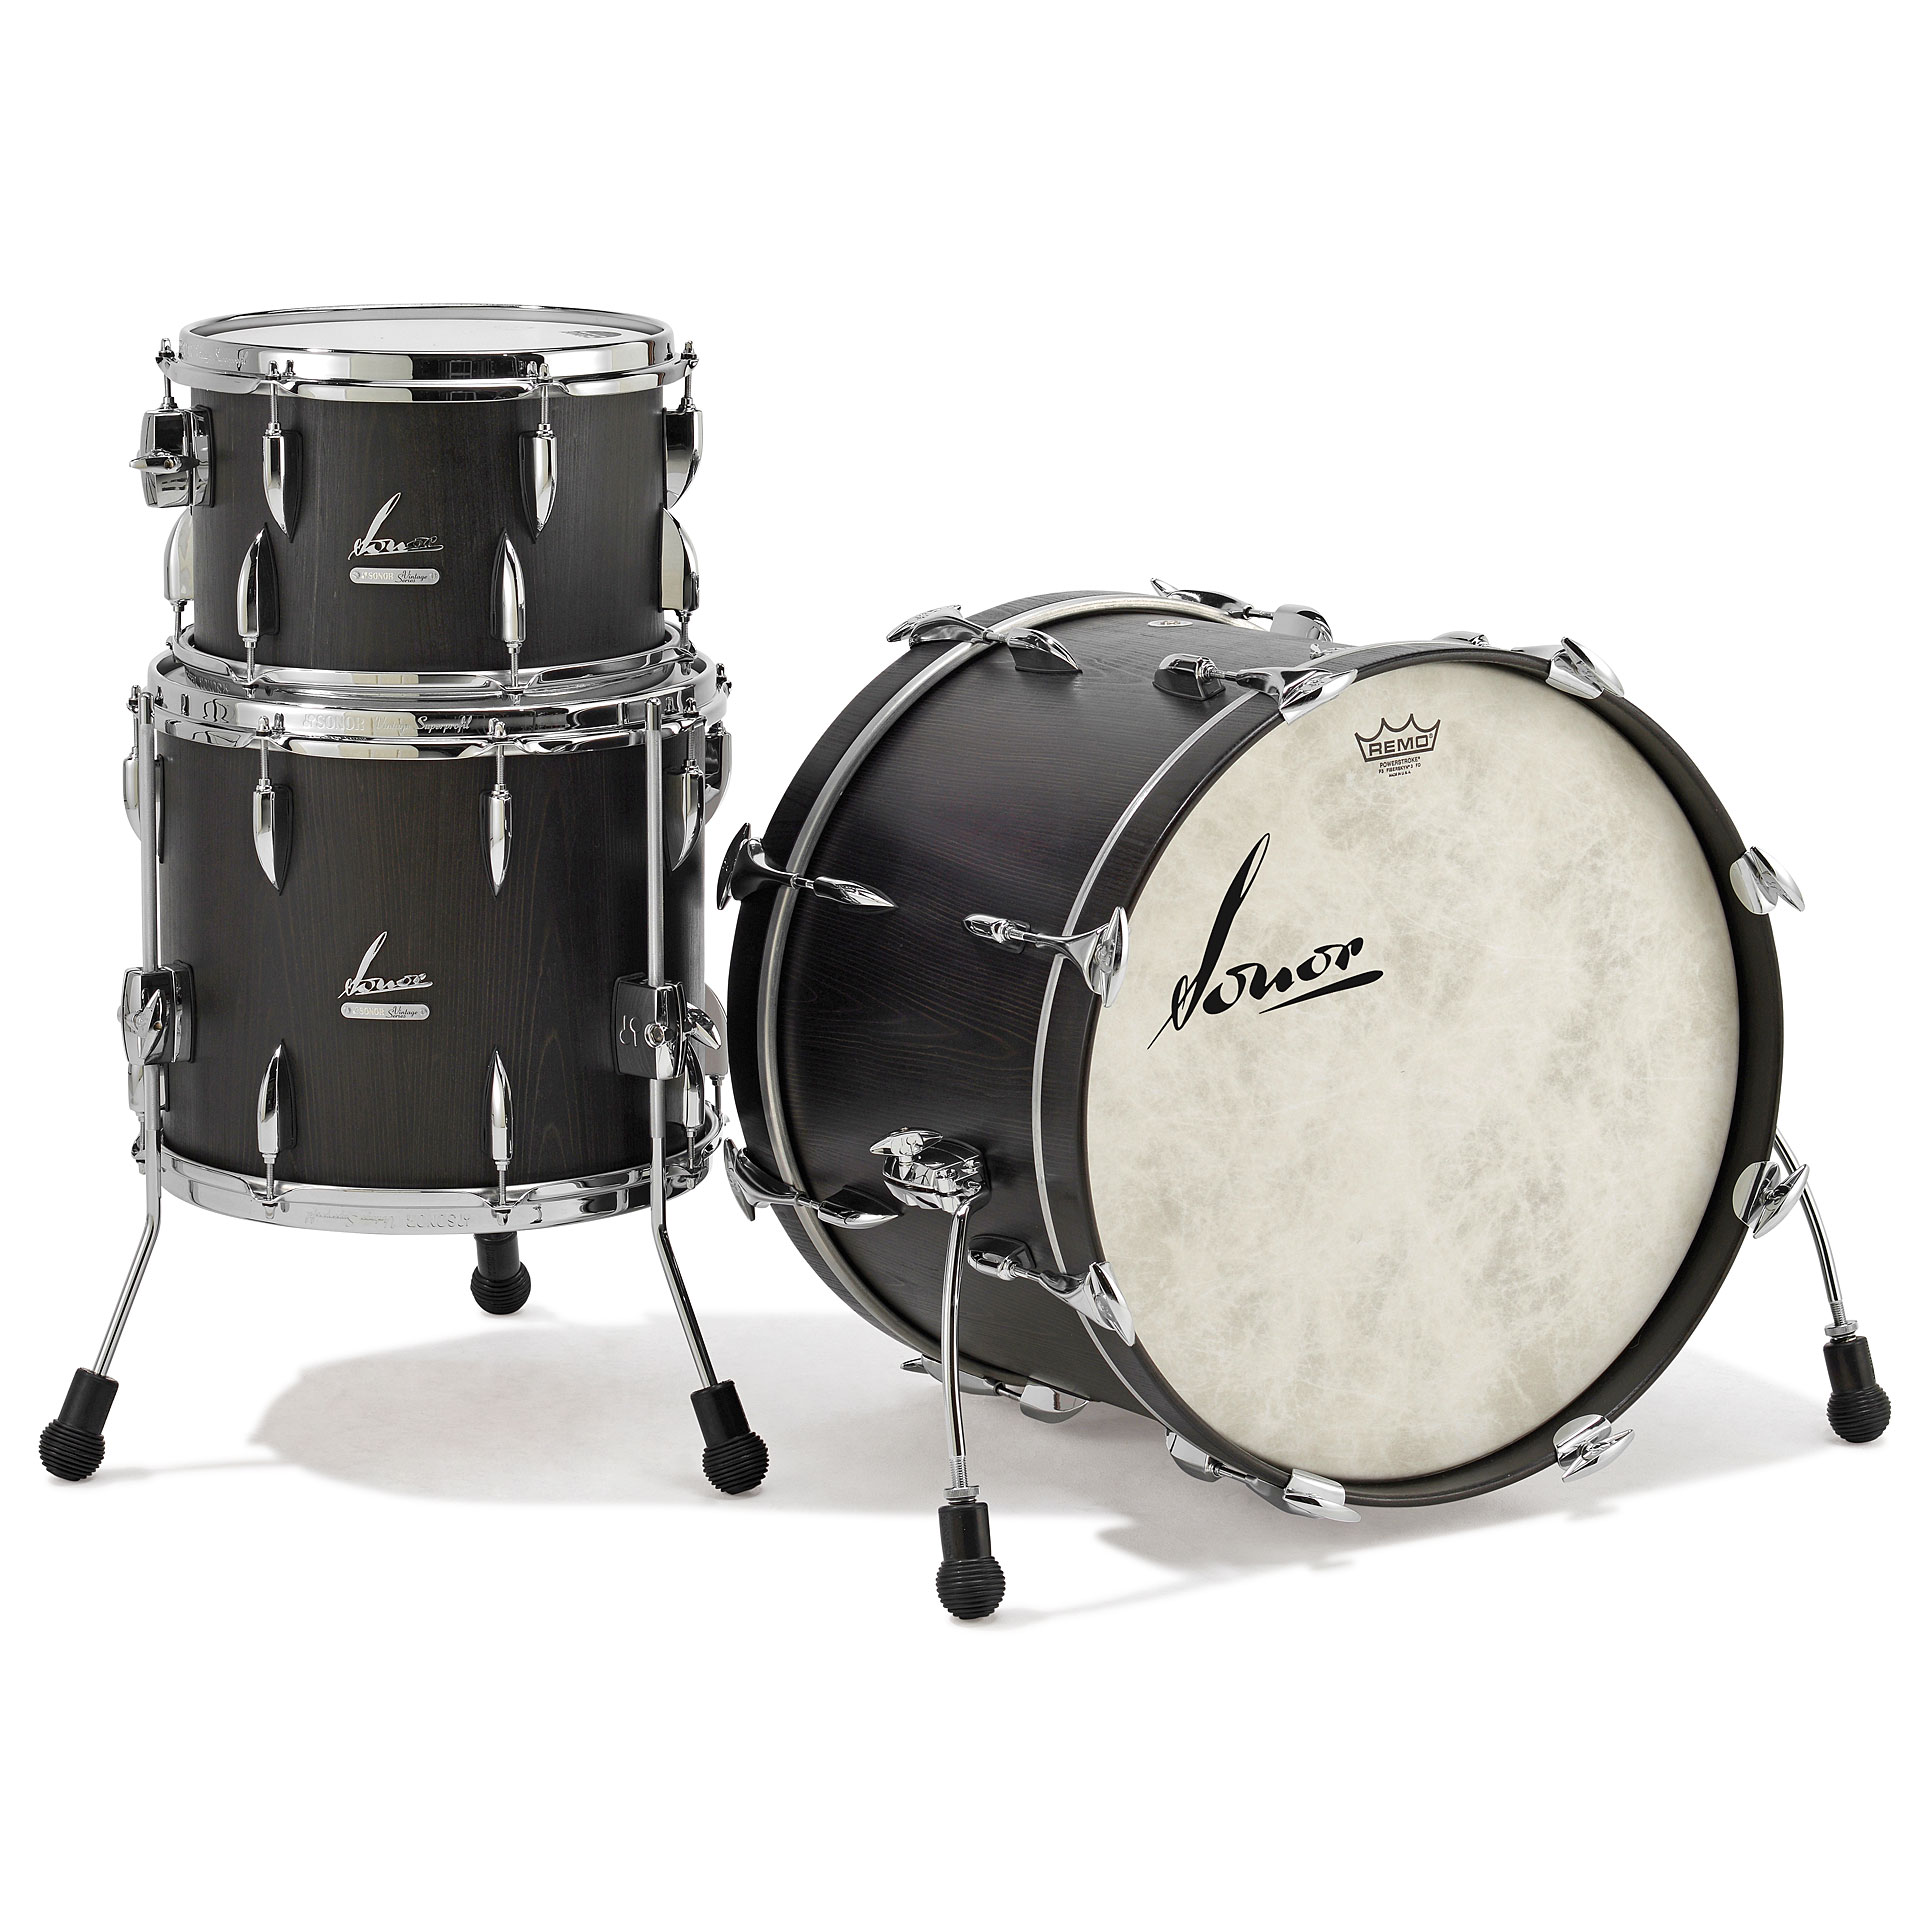 Sonor vintage series vt15 three22 vintage onyx drum kit for Classic house drums